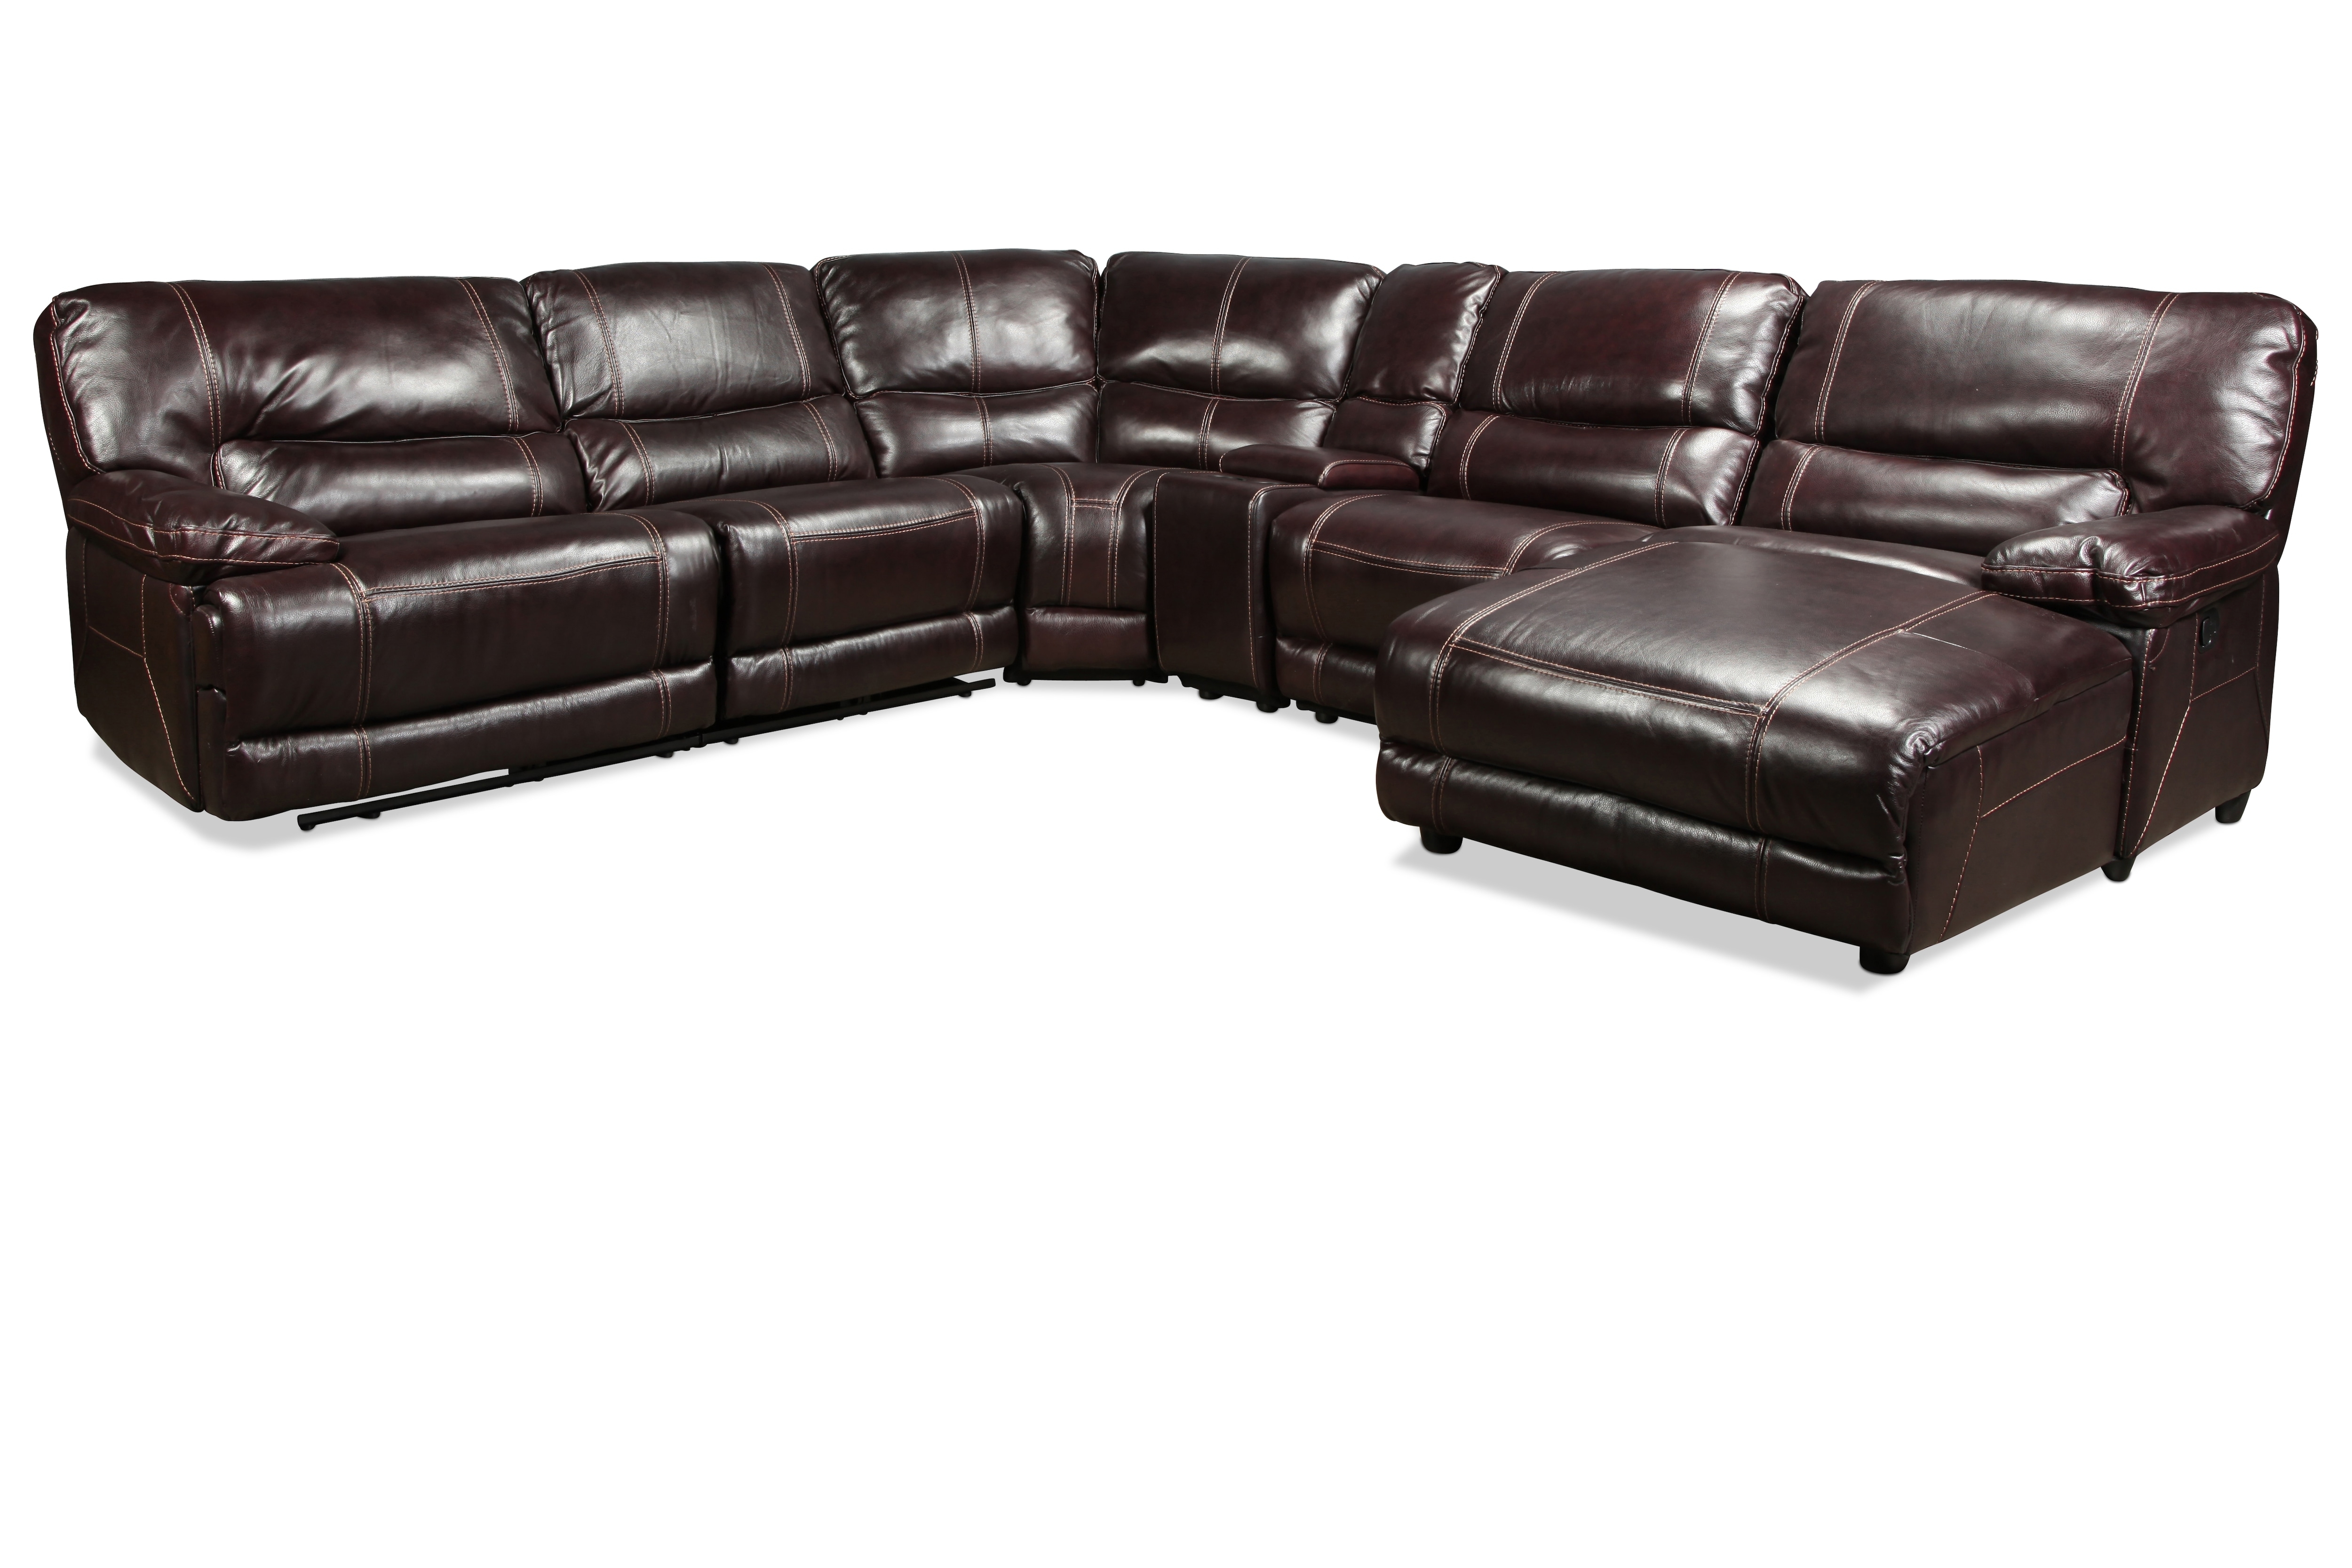 Sectionals | Levin Furniture For Sierra Down 3 Piece Sectionals With Laf Chaise (View 23 of 30)